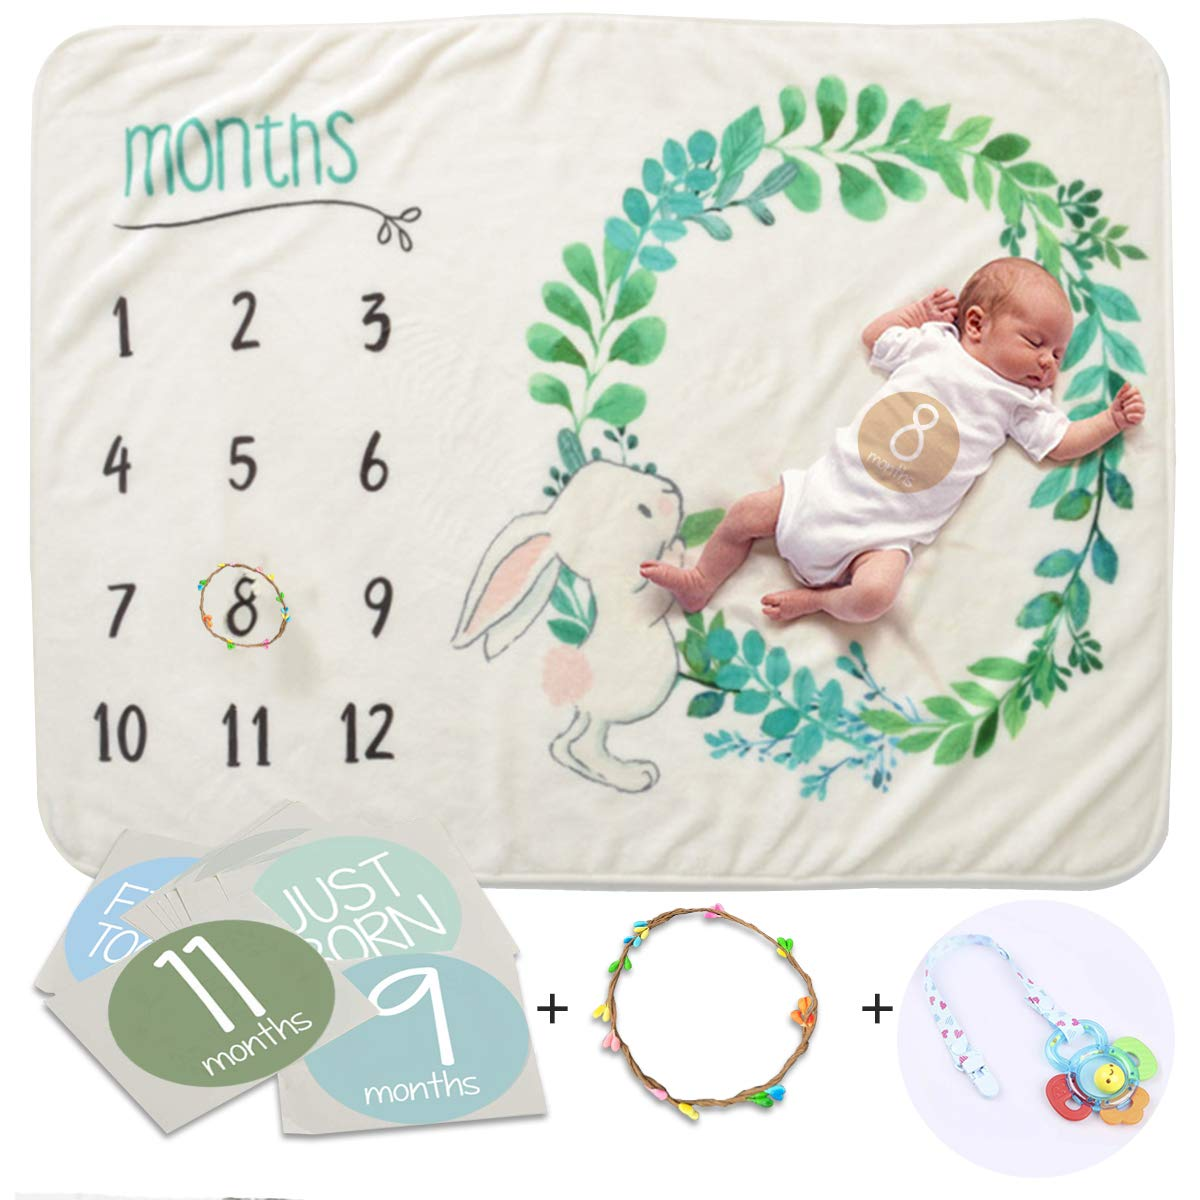 Blankie Baby Monthly Milestone Blanket For Newborn Infants Baby Photo Backdrop To Mark Age